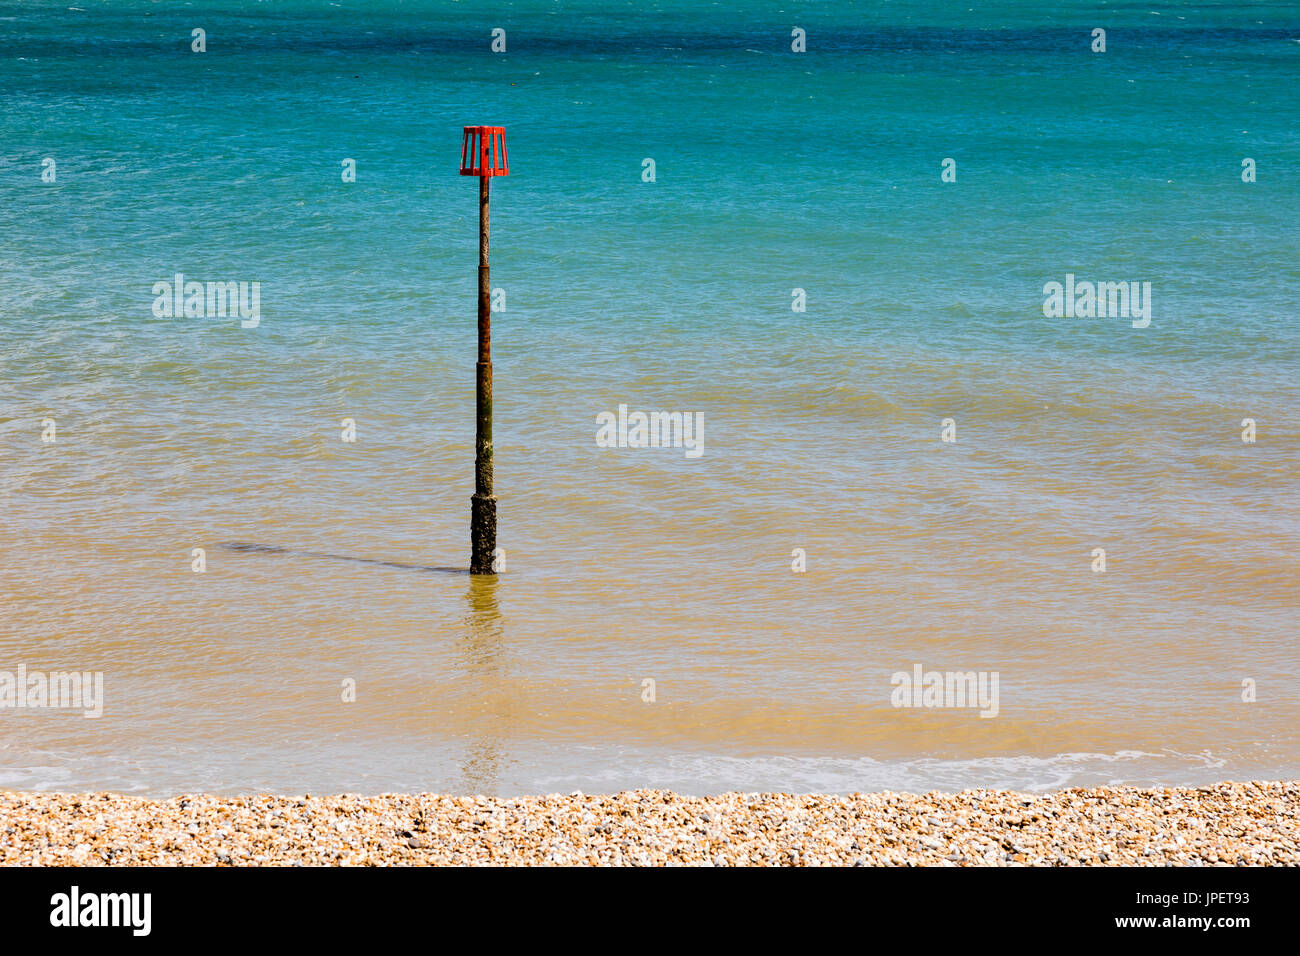 A navigation mark on the seafront at Deal, Kent, Uk against the Azure blue English Channel. Stock Photo